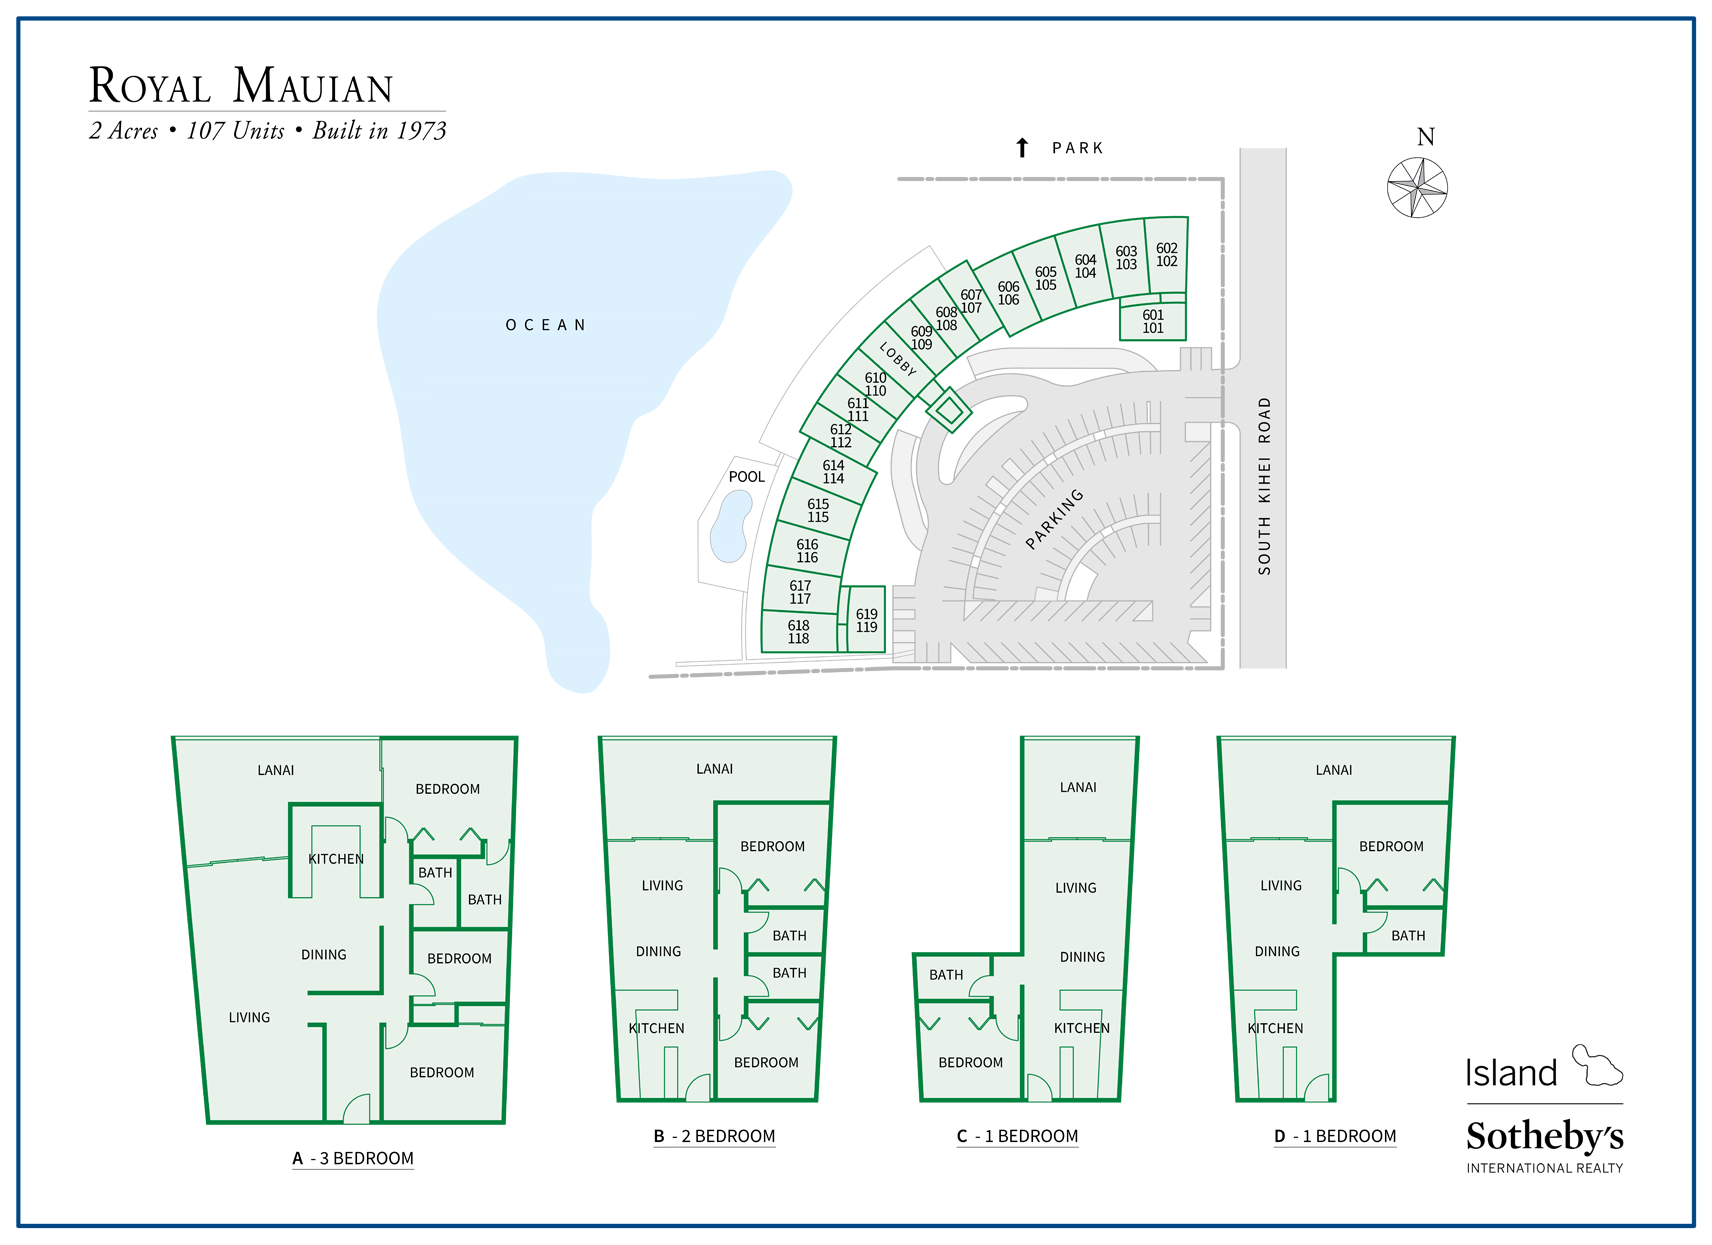 royal mauian floor plans and map